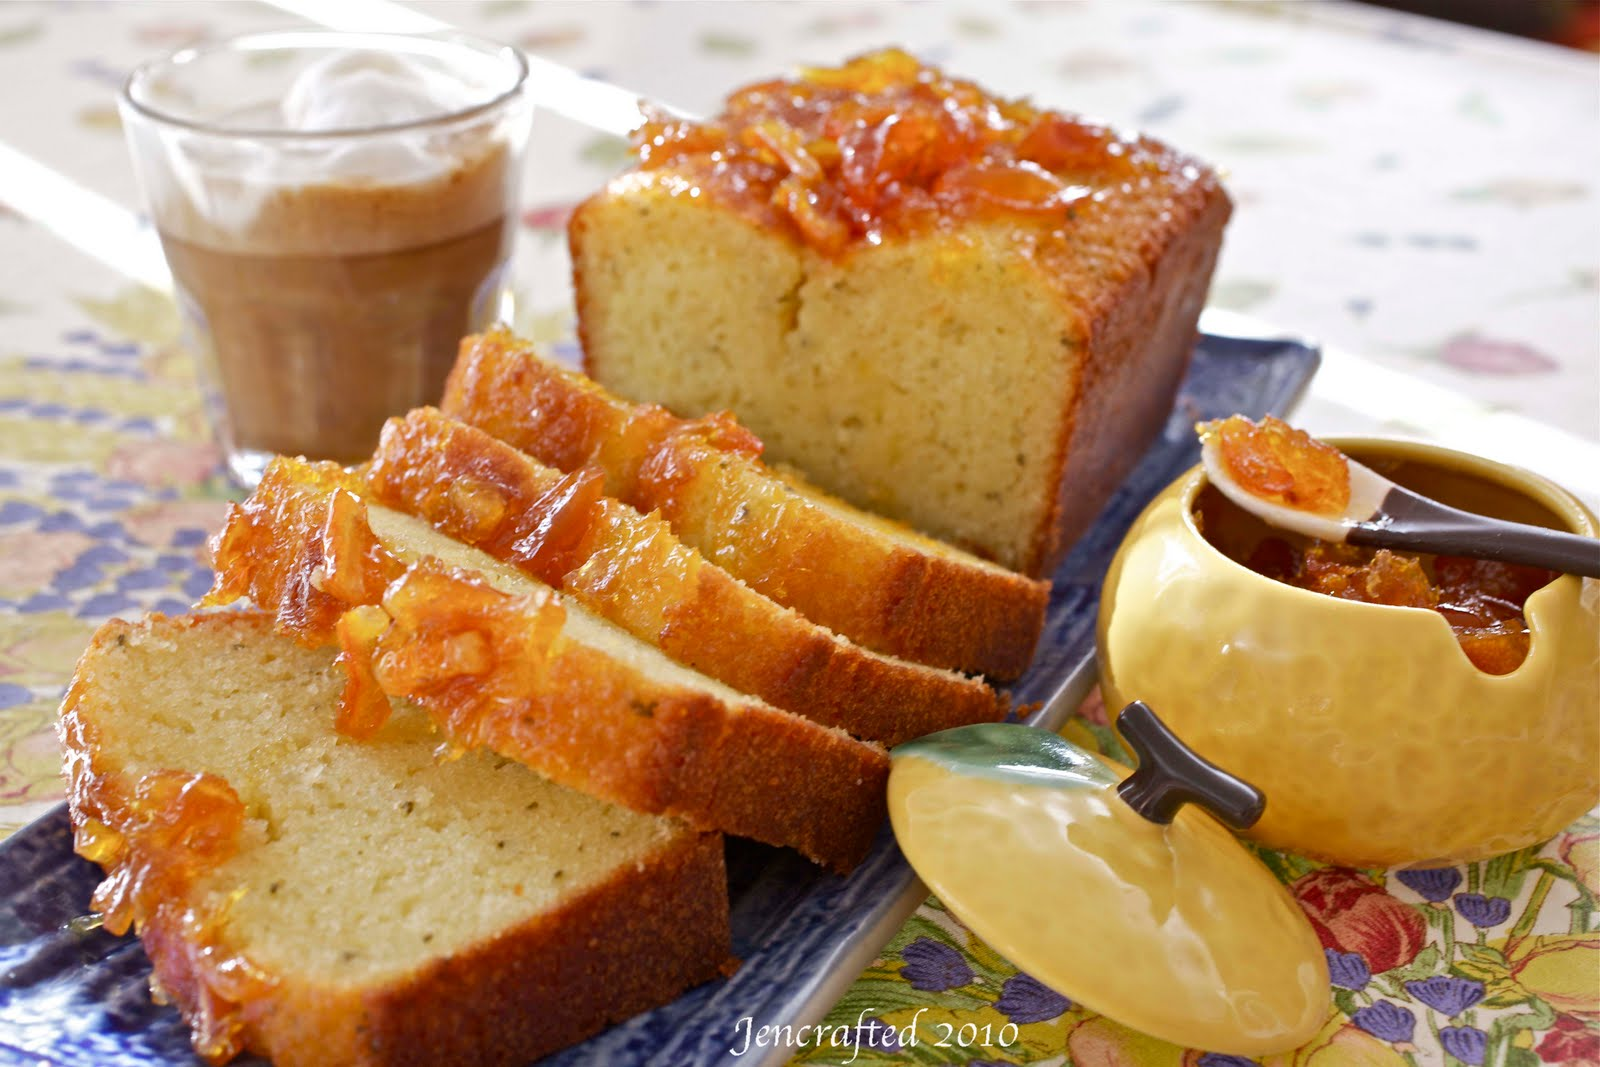 ... BAKE: Bake #14: Jenny Bakes French Yogurt Cake with Orange Marmalade